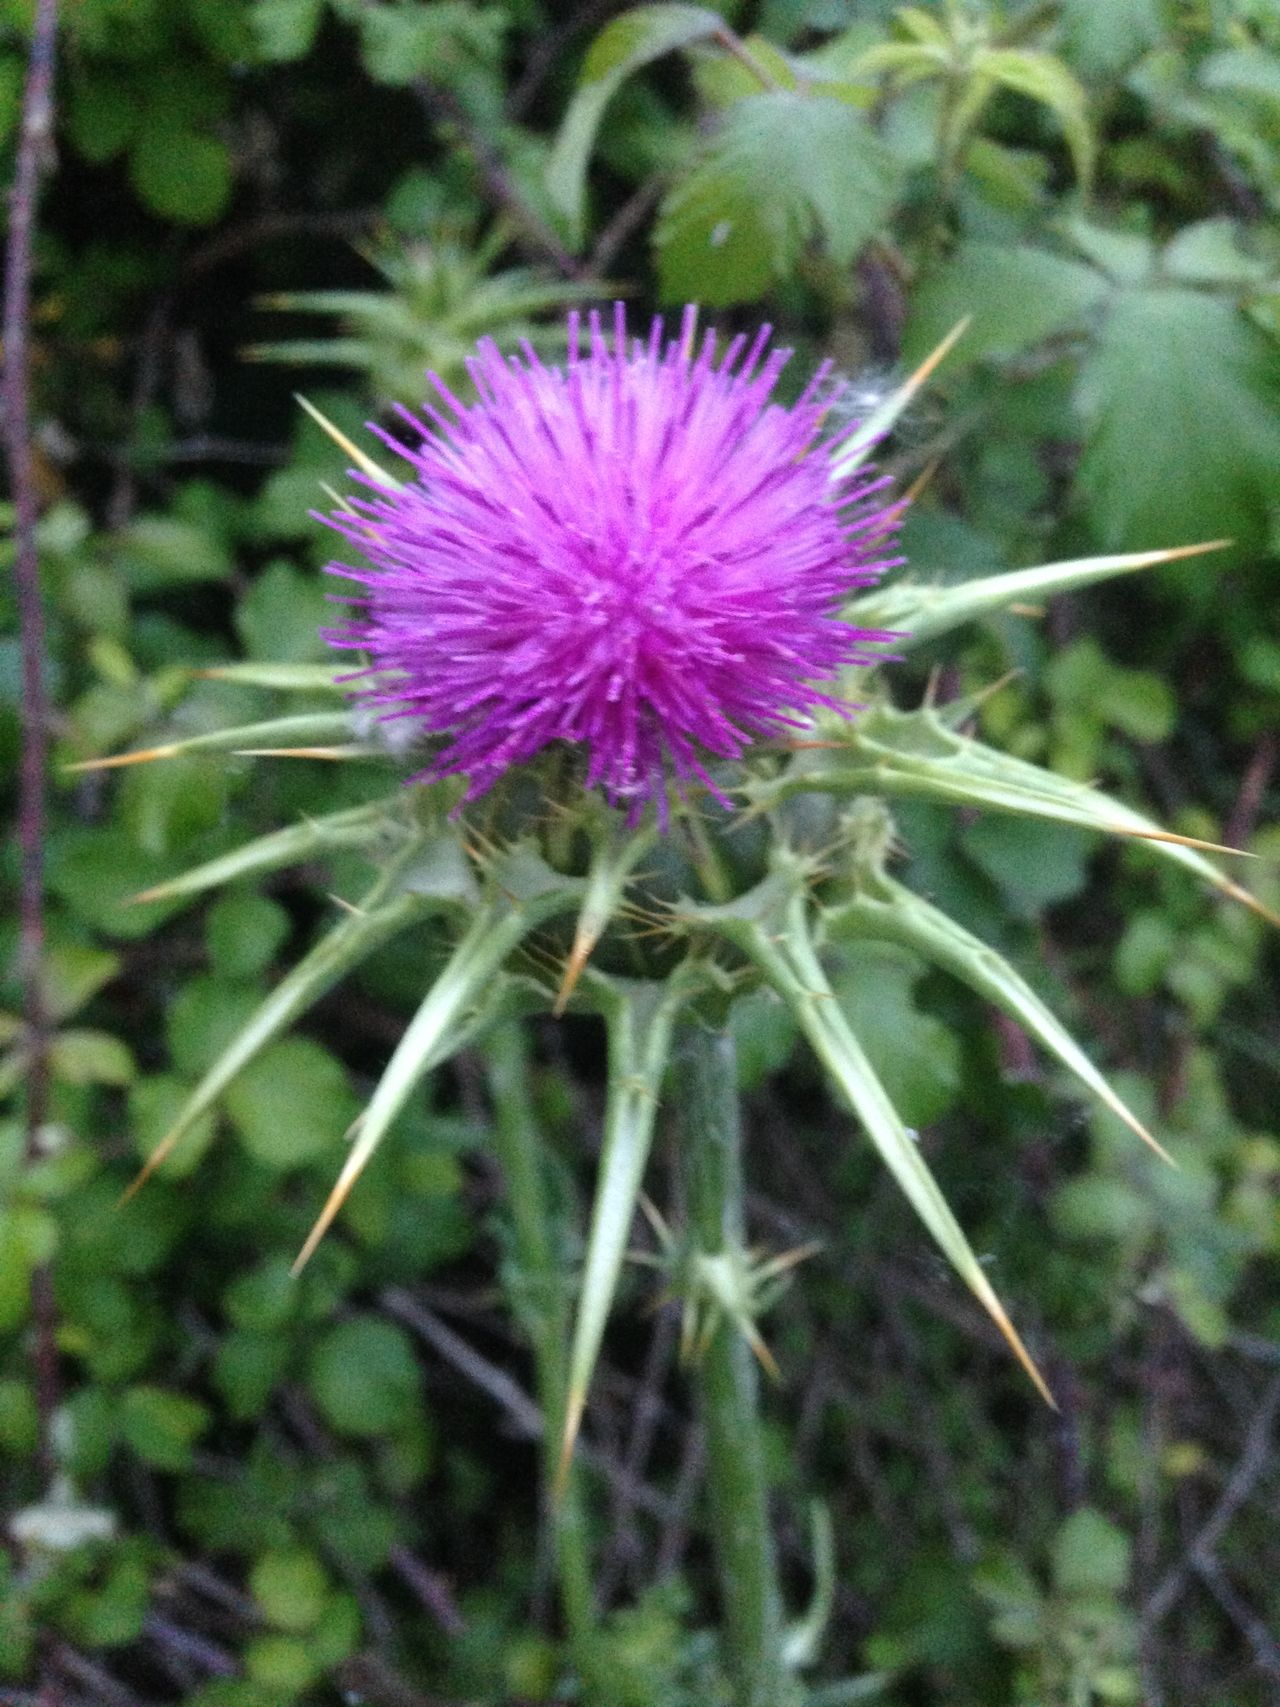 Beauty In Nature Blooming Blossom Botany Cardo Close-up Day Flower Flower Head Focus On Foreground Fragility Freshness Green Color Growth In Bloom Nature No People Outdoors Petal Pink Color Plant Purple Selective Focus Stem Thistle